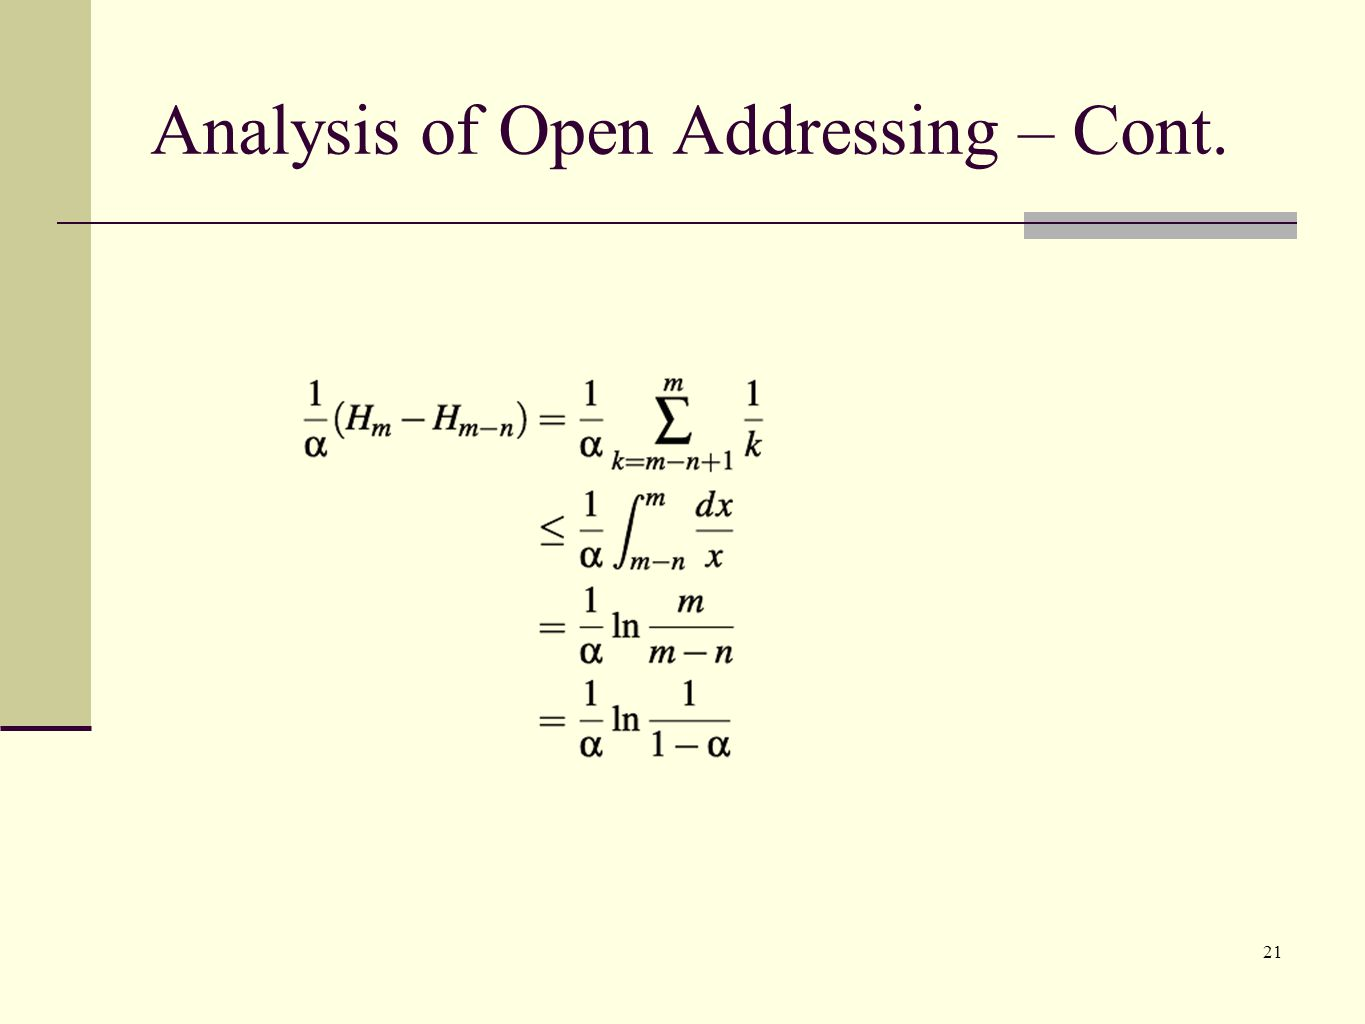 Analysis of Open Addressing – Cont.